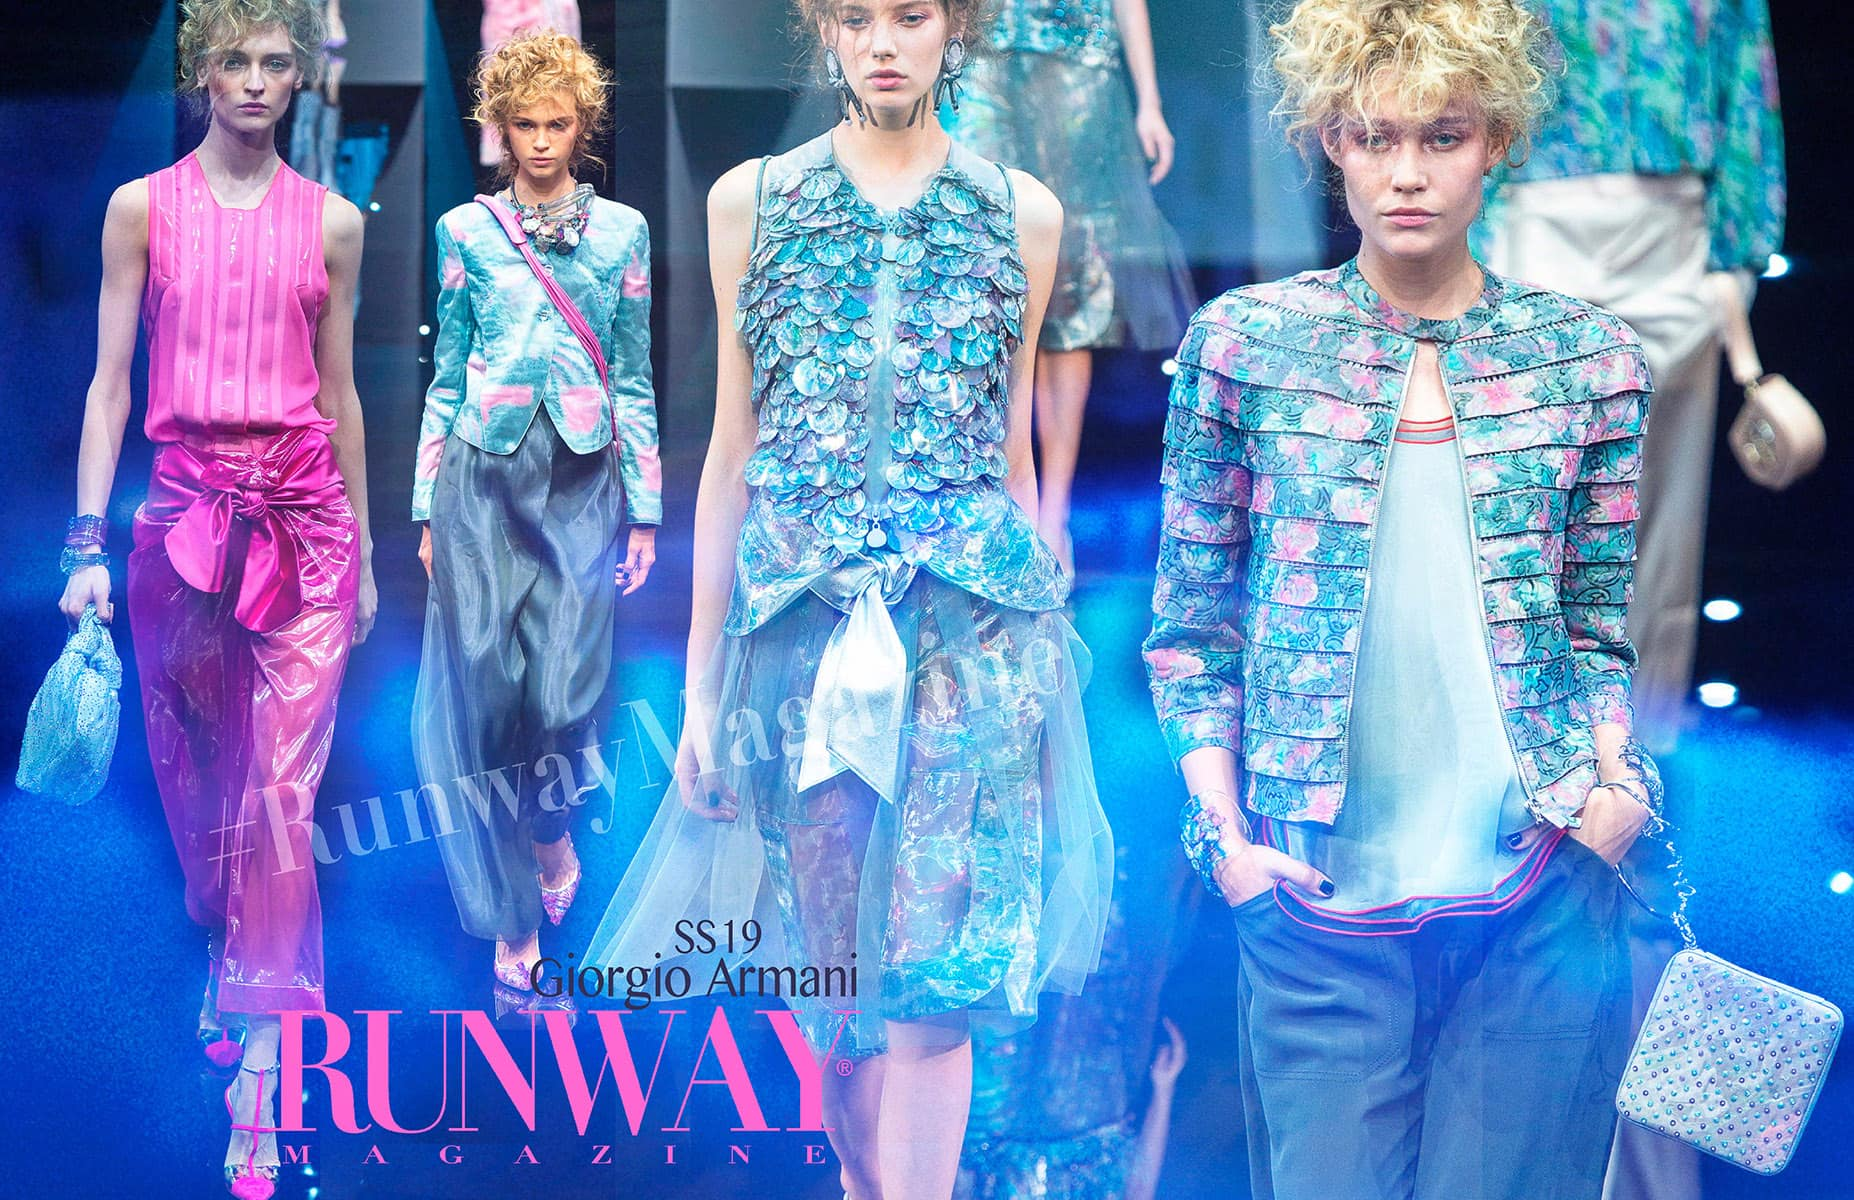 Blue Trend - Giorgio Armani Spring Summer 2018 by Runway Magazine Paris Fashion Week